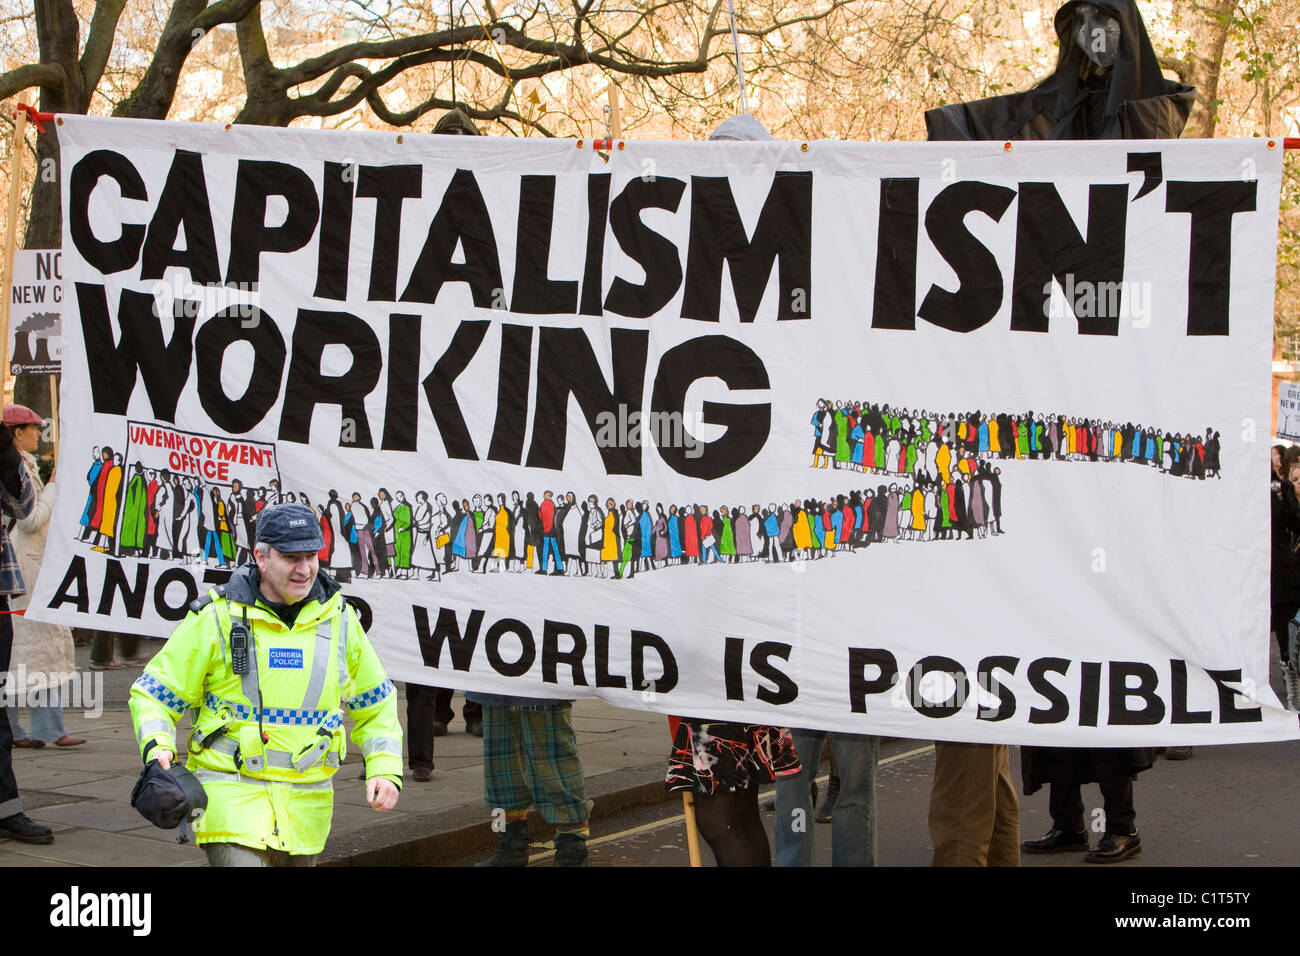 Protestors at a climate change rally in London December 2008 with a policeman. - Stock Image